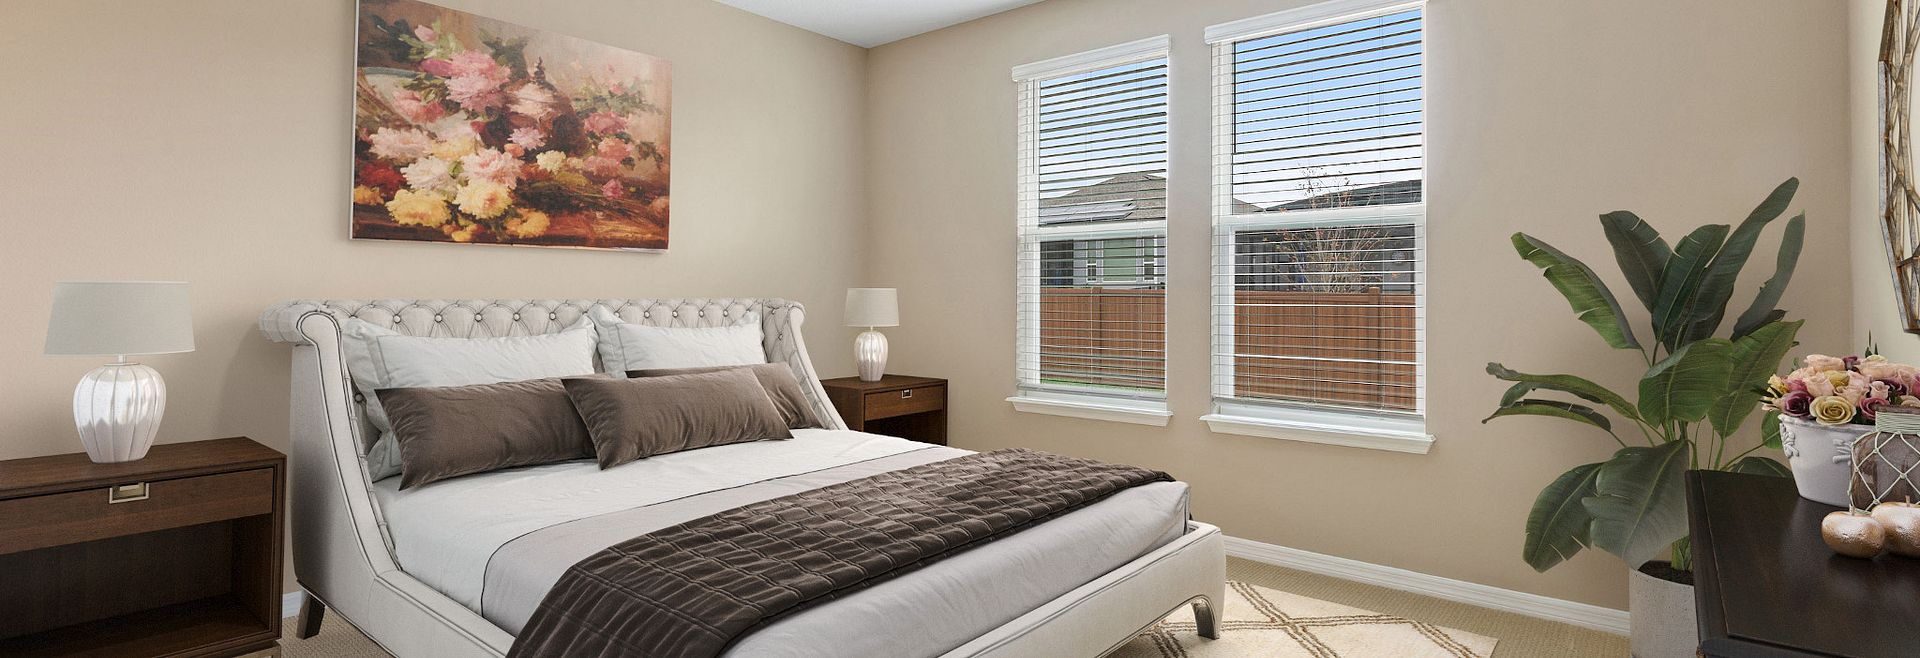 Trilogy Orlando Quick Move In Capri Plan Home Master Bed